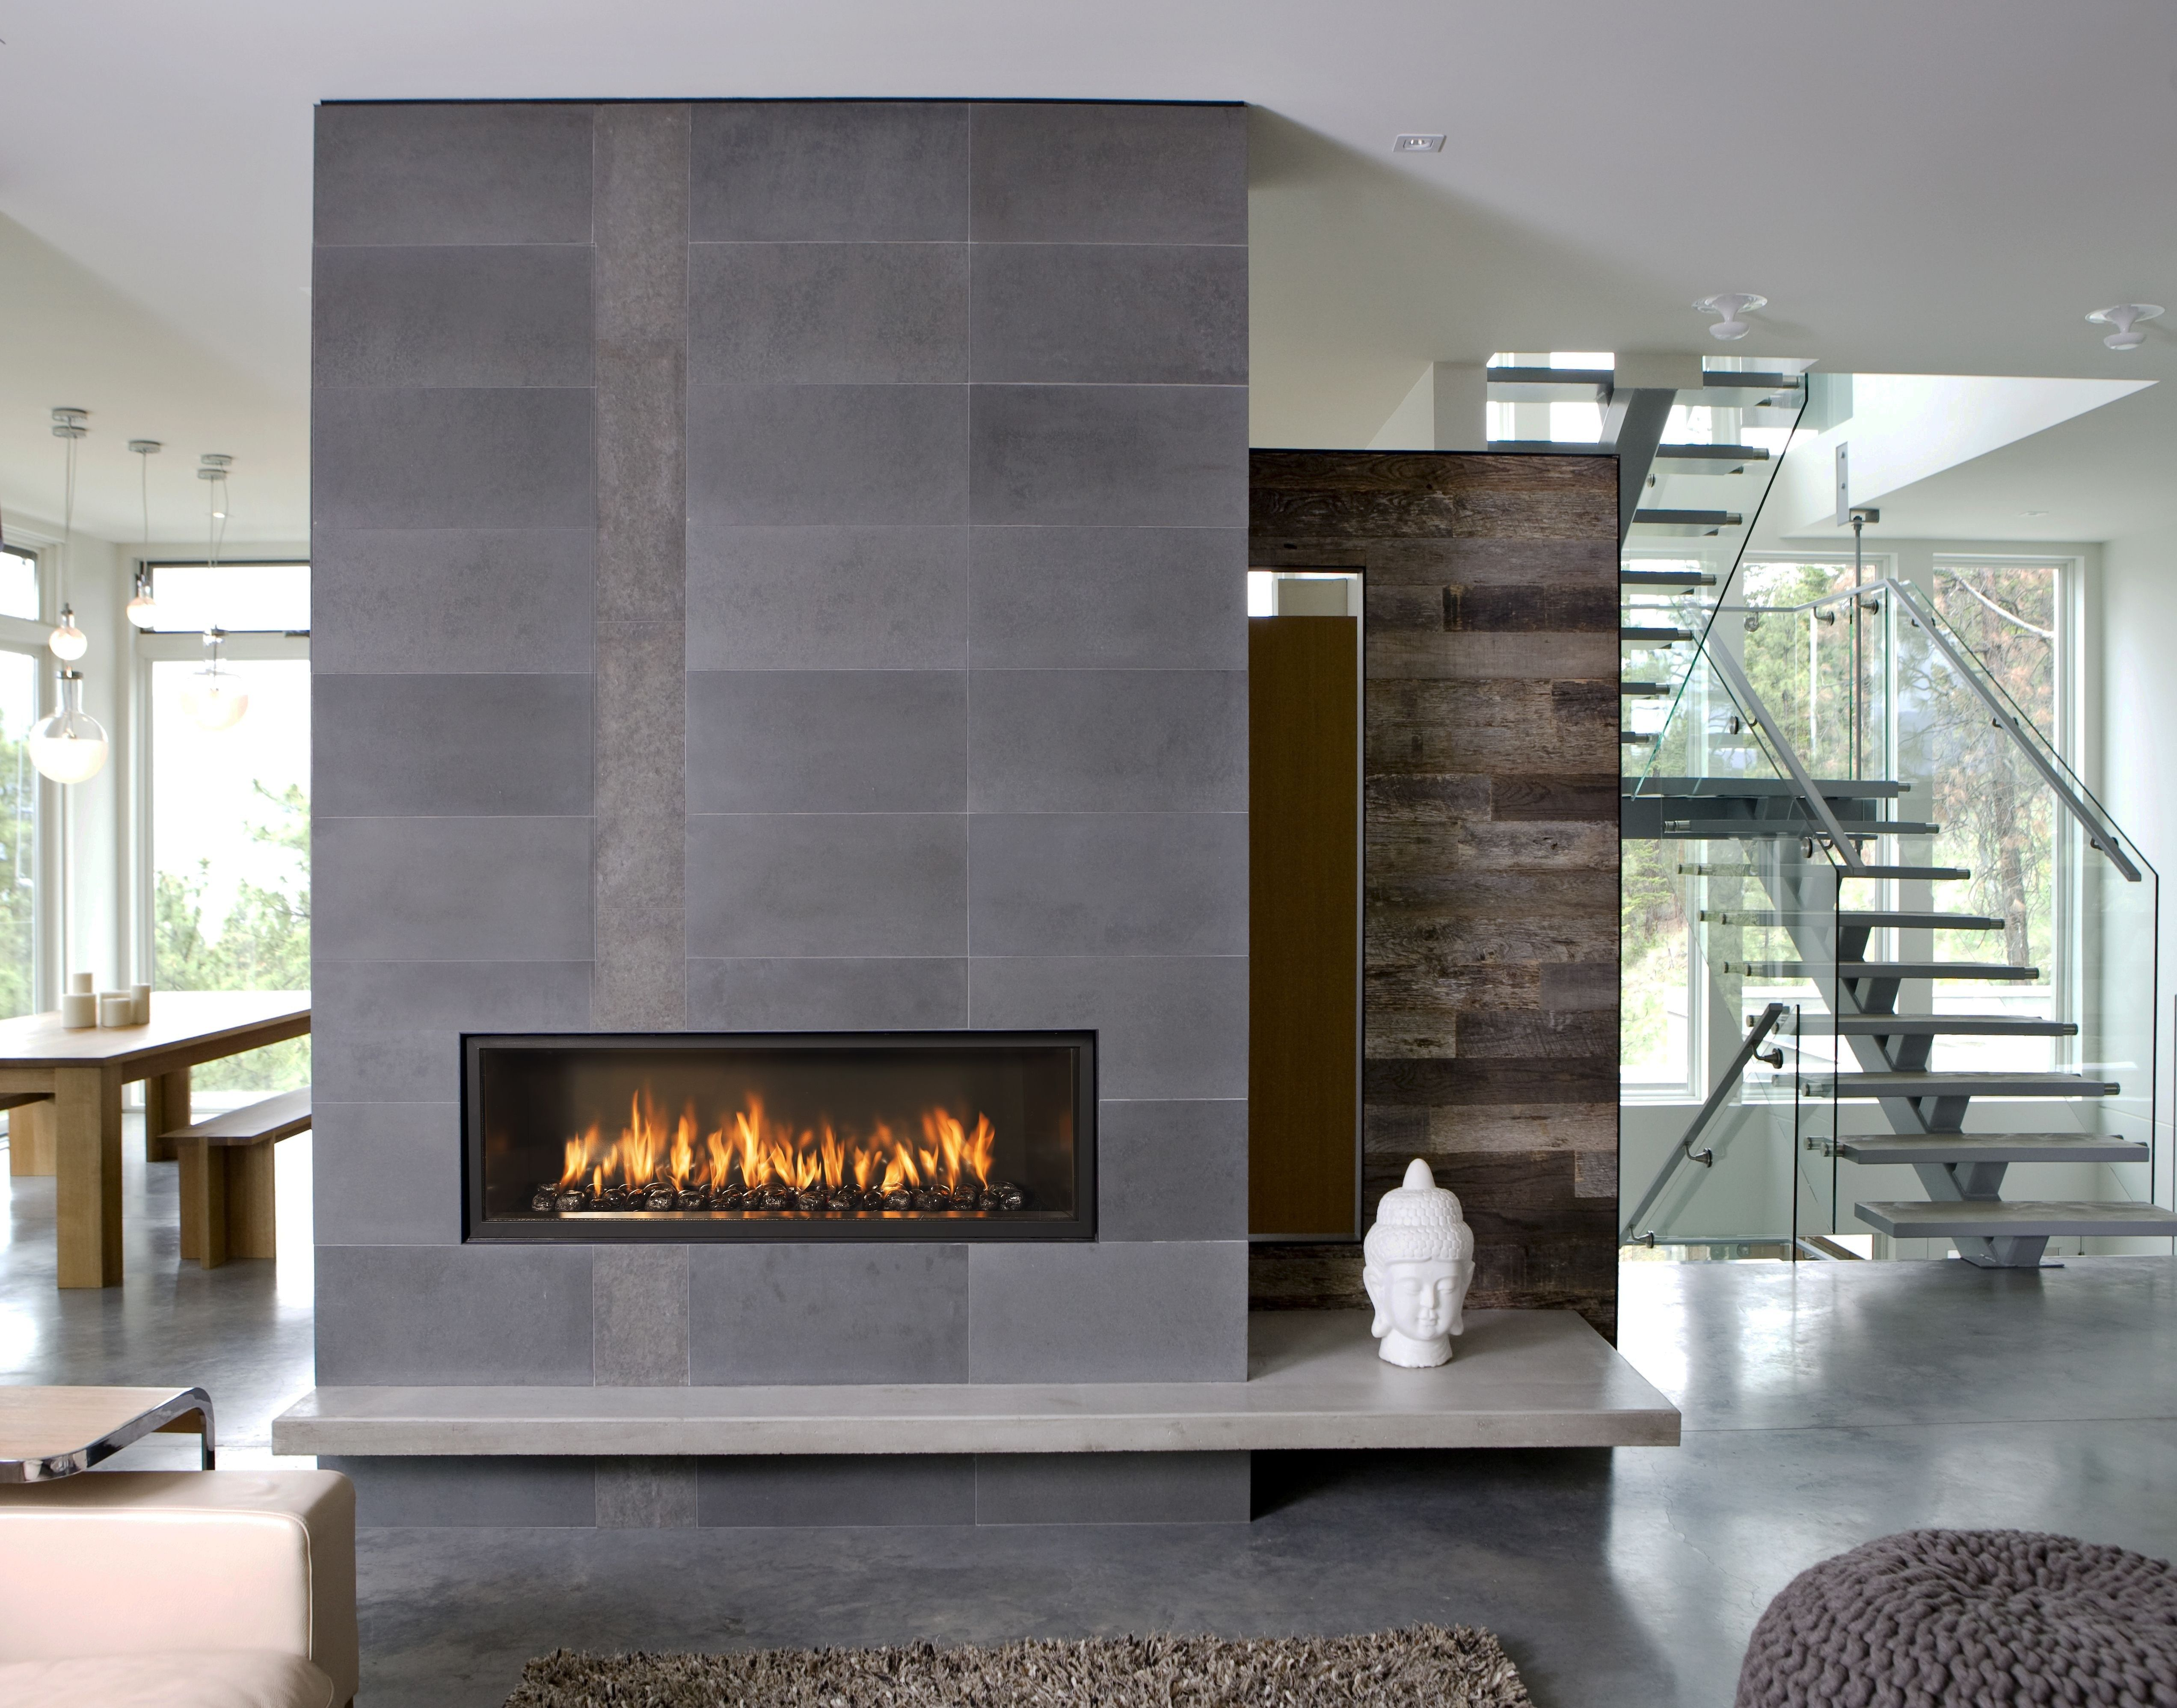 28 Easy And Simple Contemporary Fireplace Design Ideas In 2020